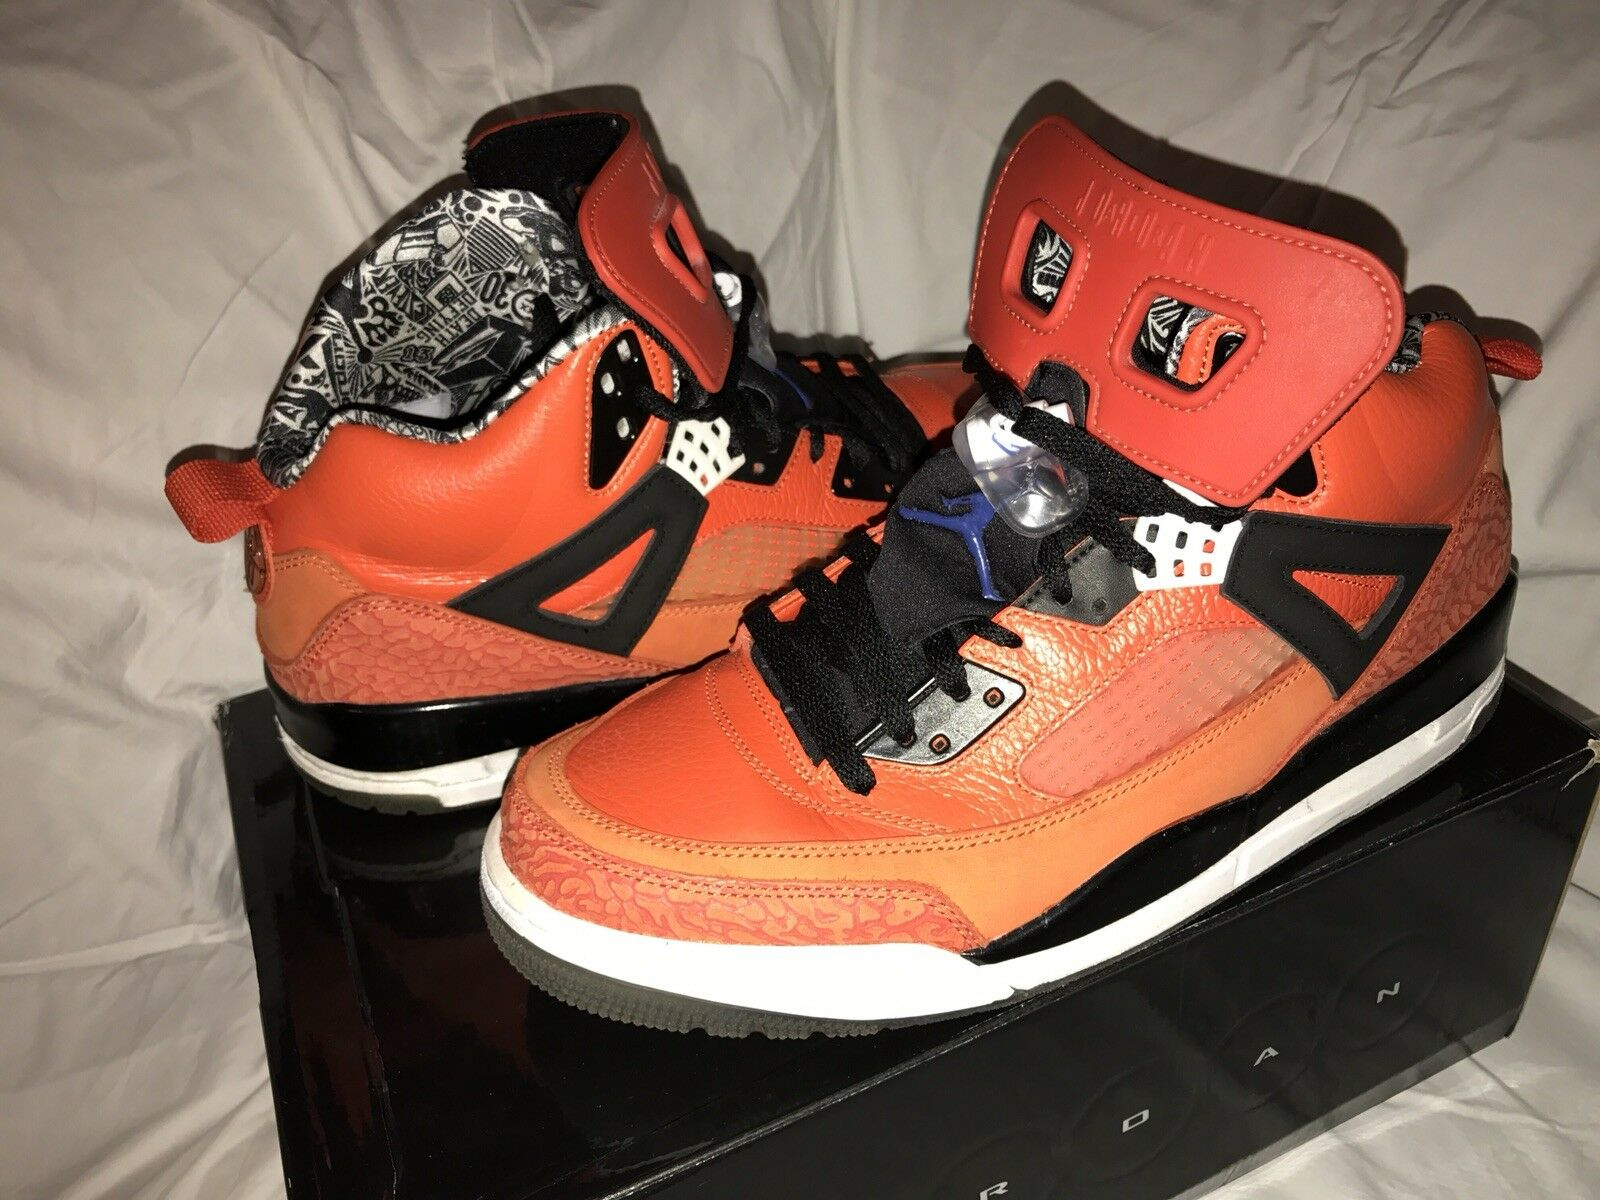 Air jordan Orange Spizike Knicks Orange jordan Größe sz 12 49c10f